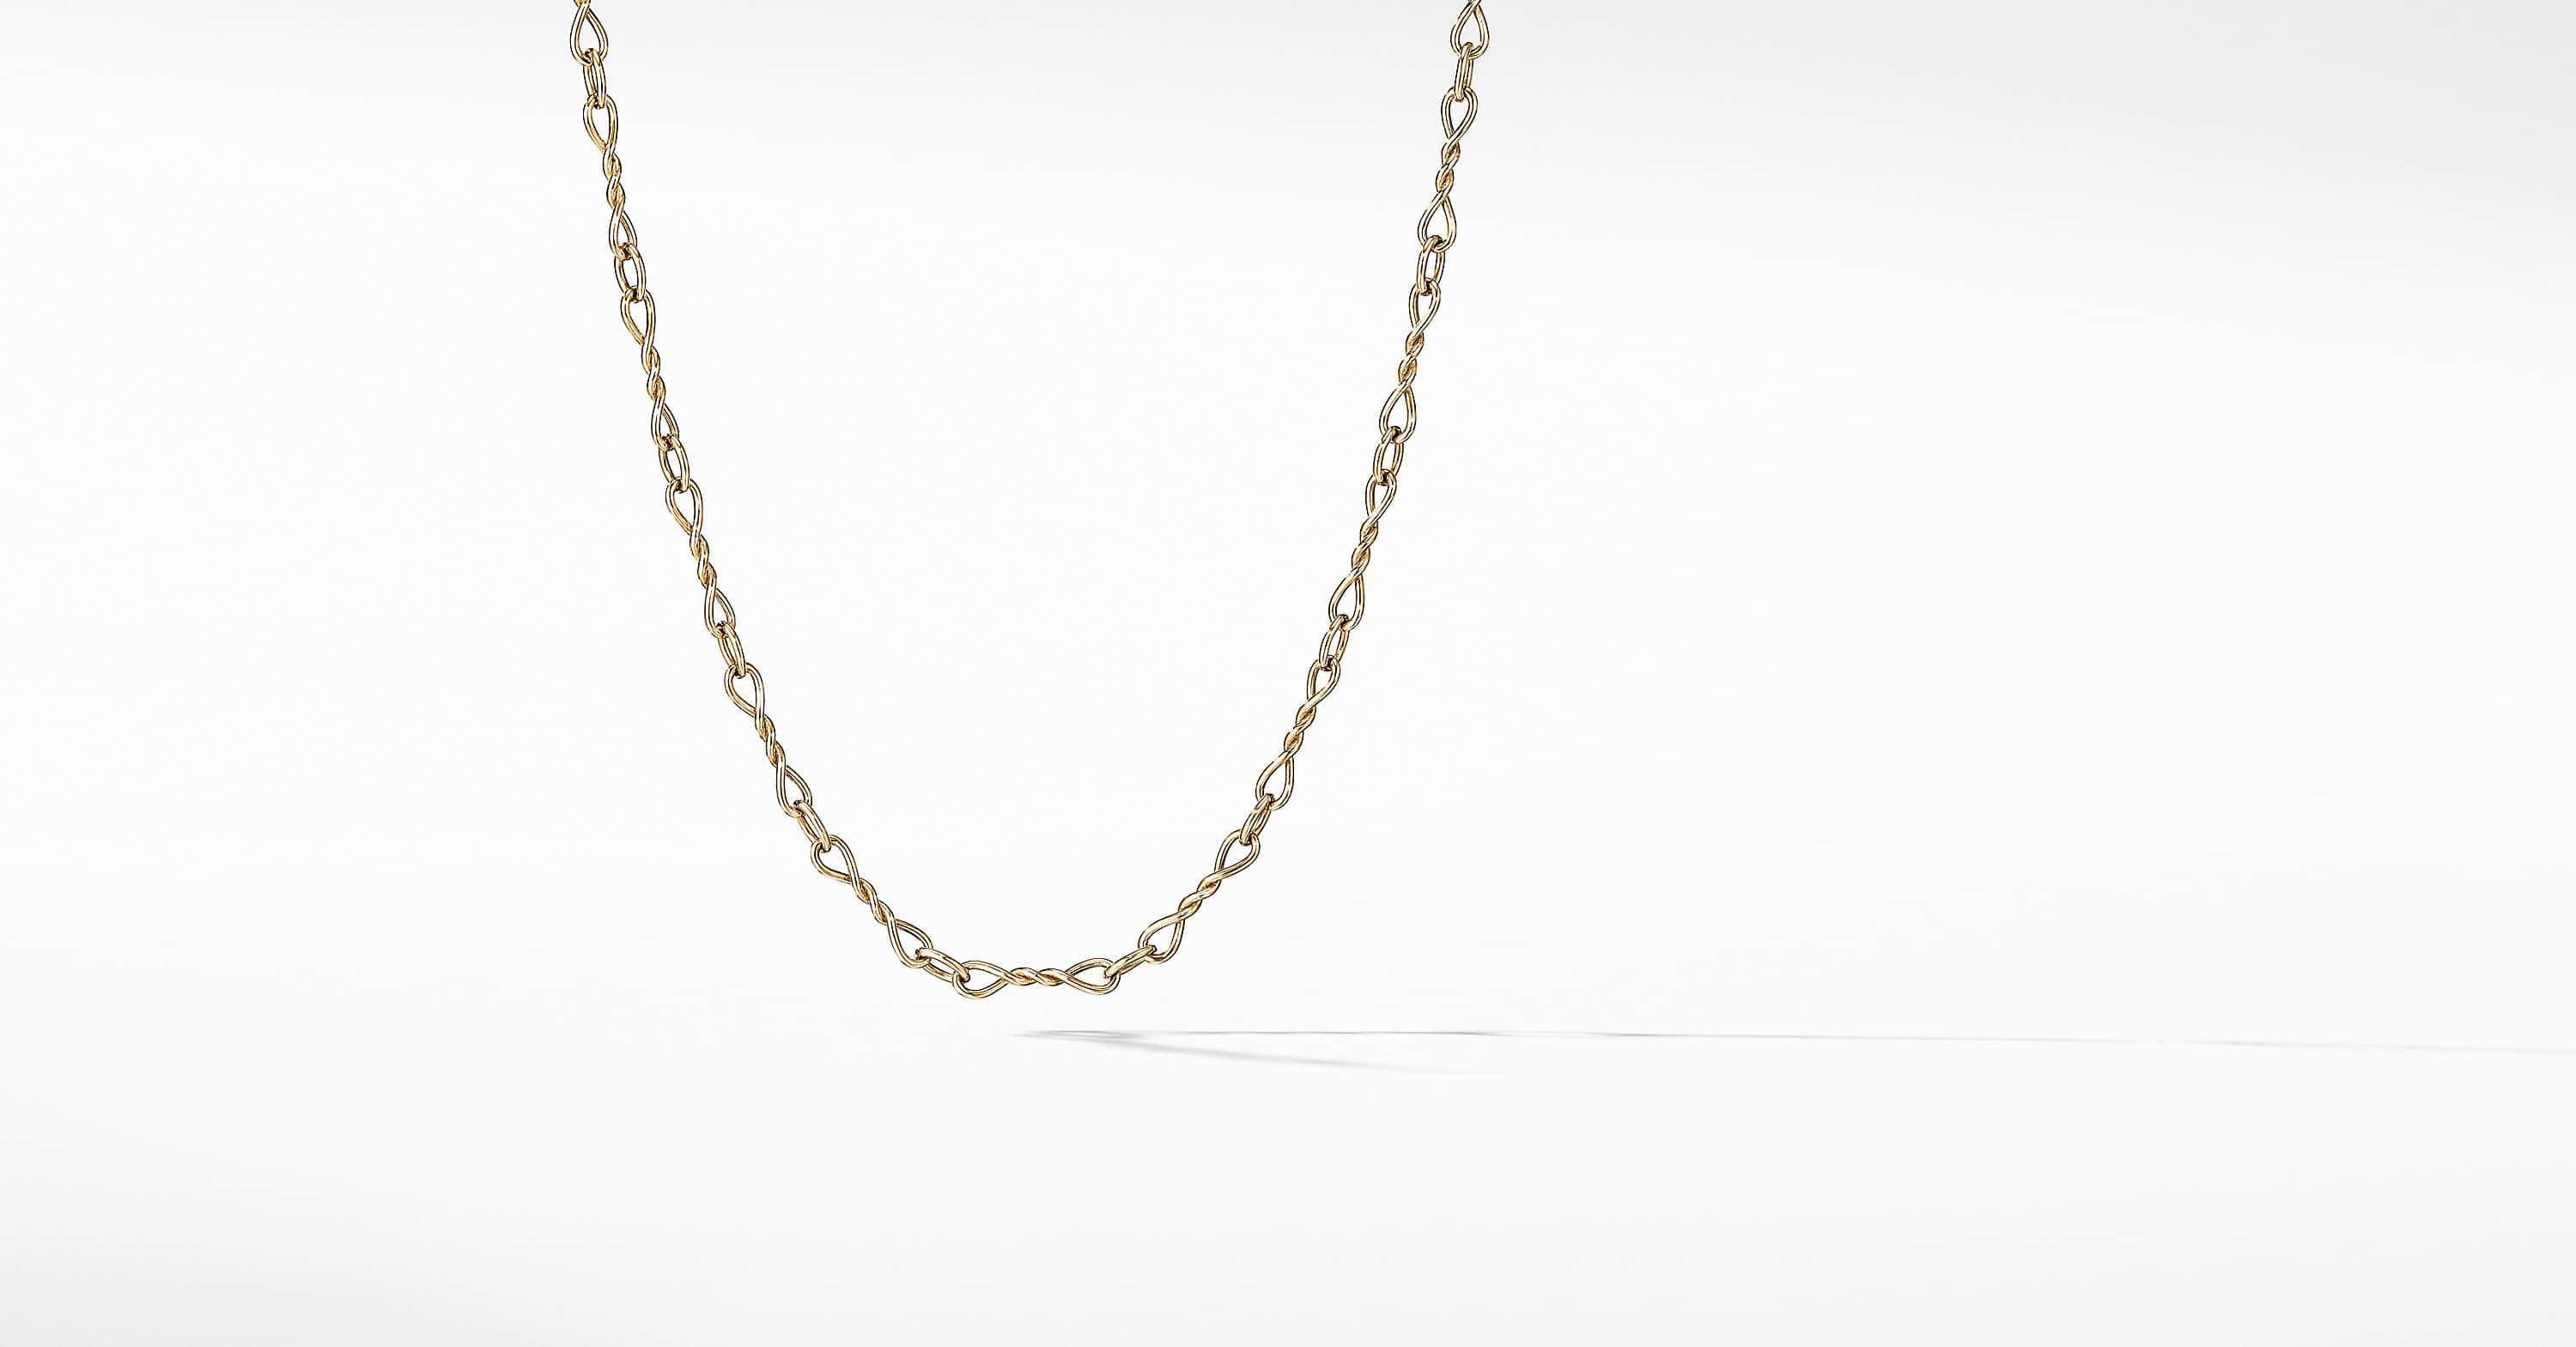 Continuance Small Chain Necklace in 18K Gold